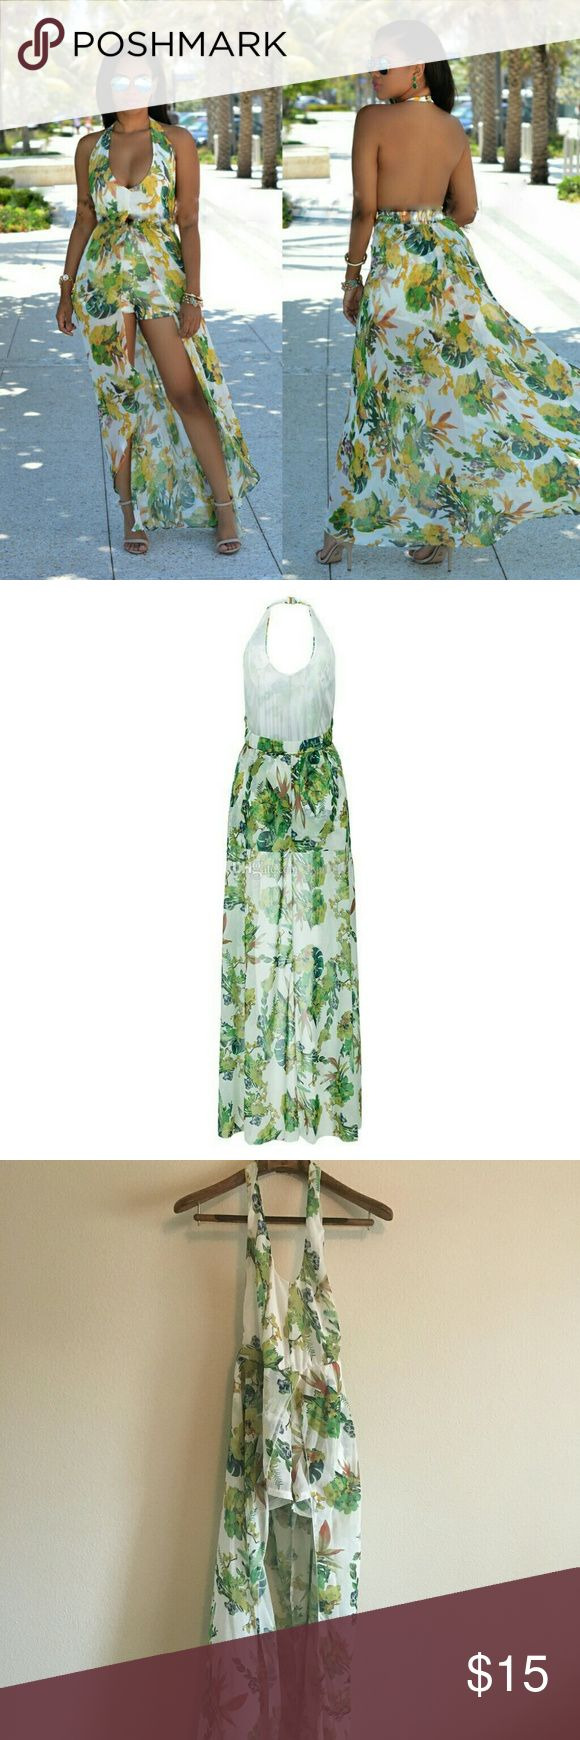 Women's V Neck Floral Chiffon Maxi Dress/Romper Never worn. 80% polyester 20% linen, pull on closure, floral Maxi dress overlay Romper playsuit made of Chiffon fabric. Occasion: holiday, party, club, evening, cocktail, casual, beach and wedding, great for summers and spring. Fit: Runs Small. Felicity Young Dresses